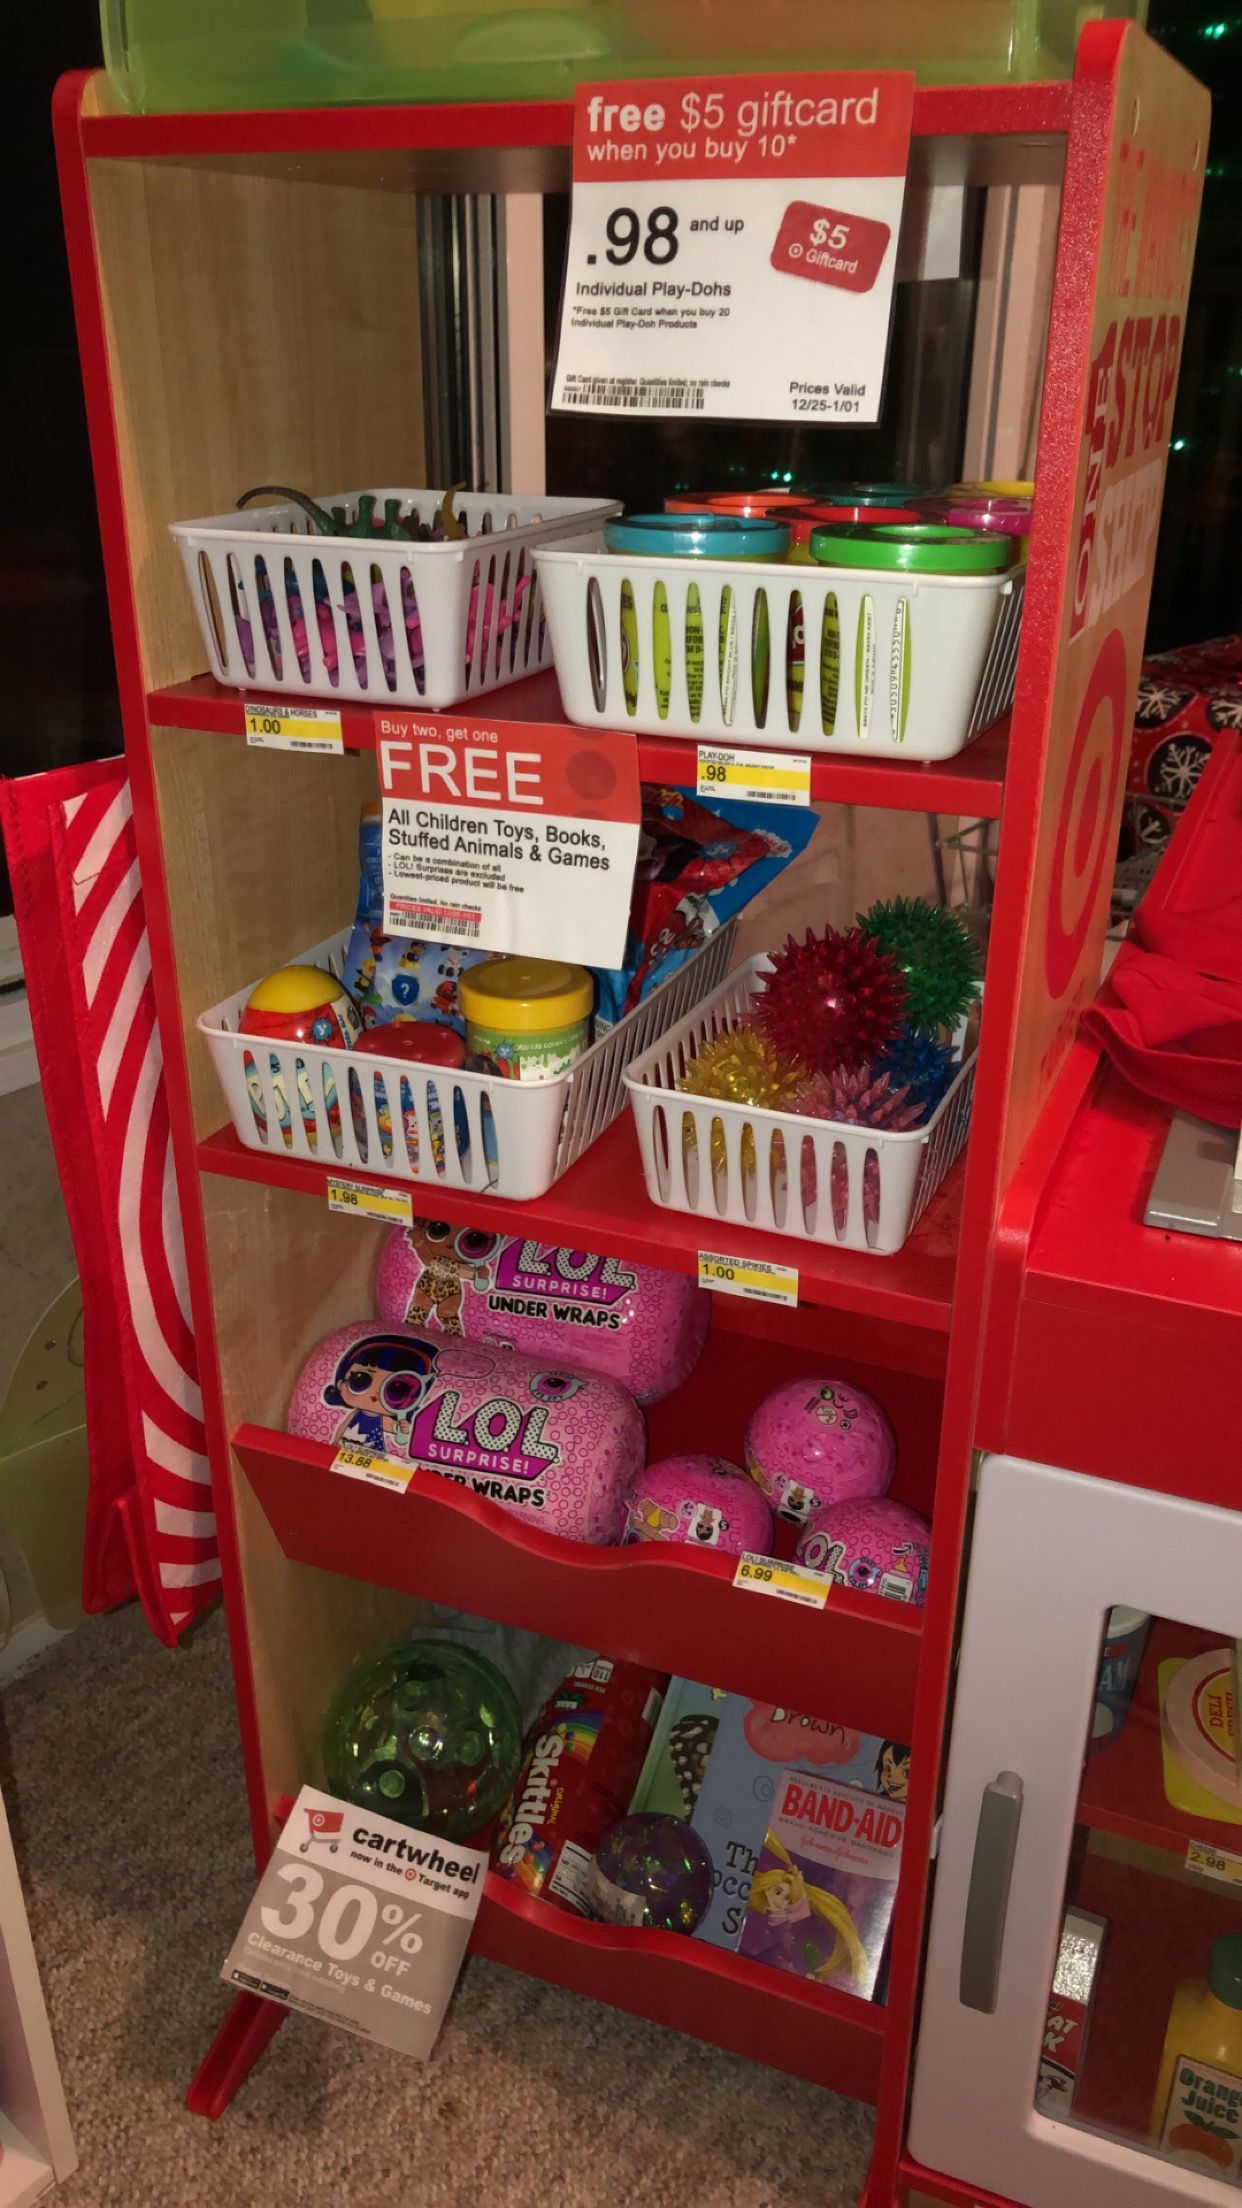 Target store for my little Target obsessed shopper! Here's